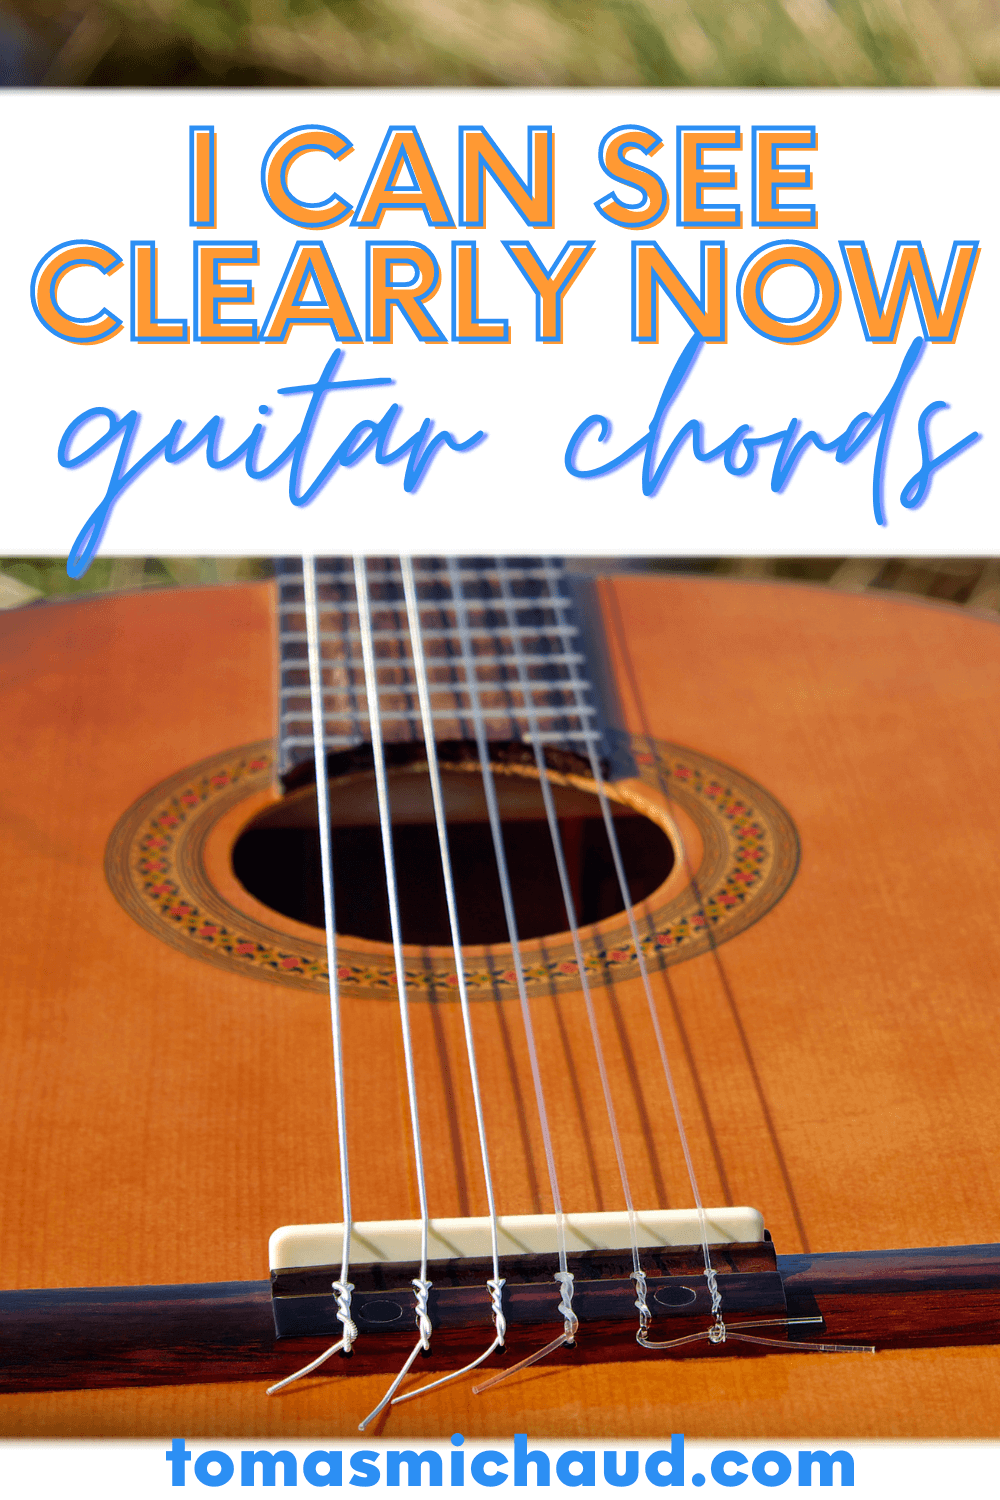 I Can See Clearly Now Guitar Chords